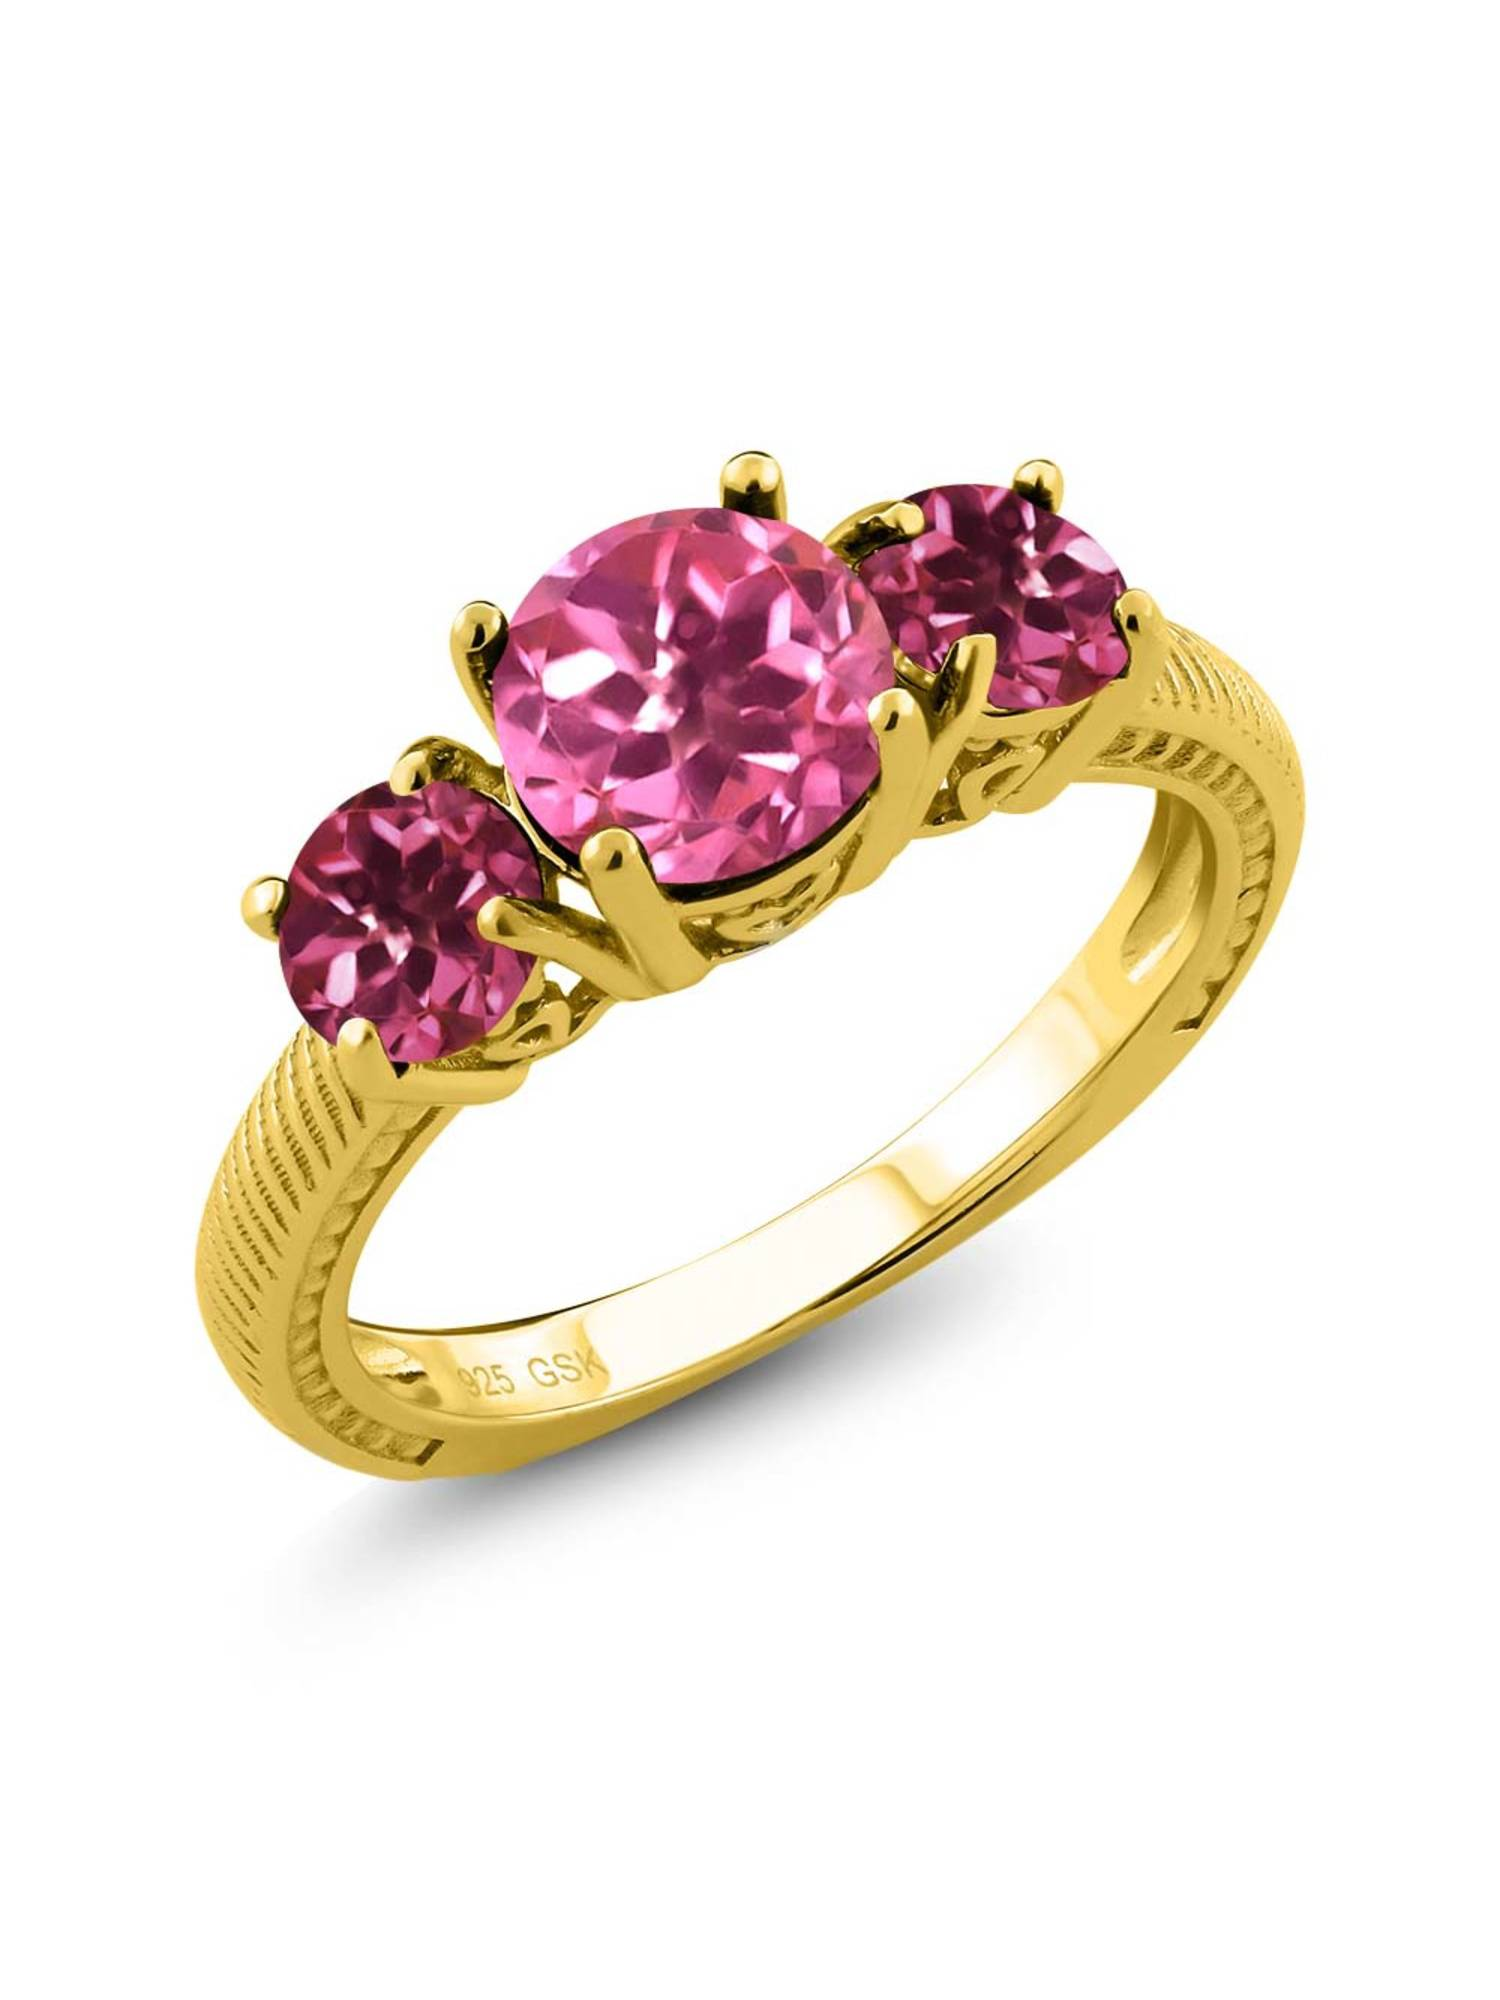 2.30 Ct Pink Mystic Topaz Pink Tourmaline 18K Yellow Gold Plated Silver 3 Stone Ring by